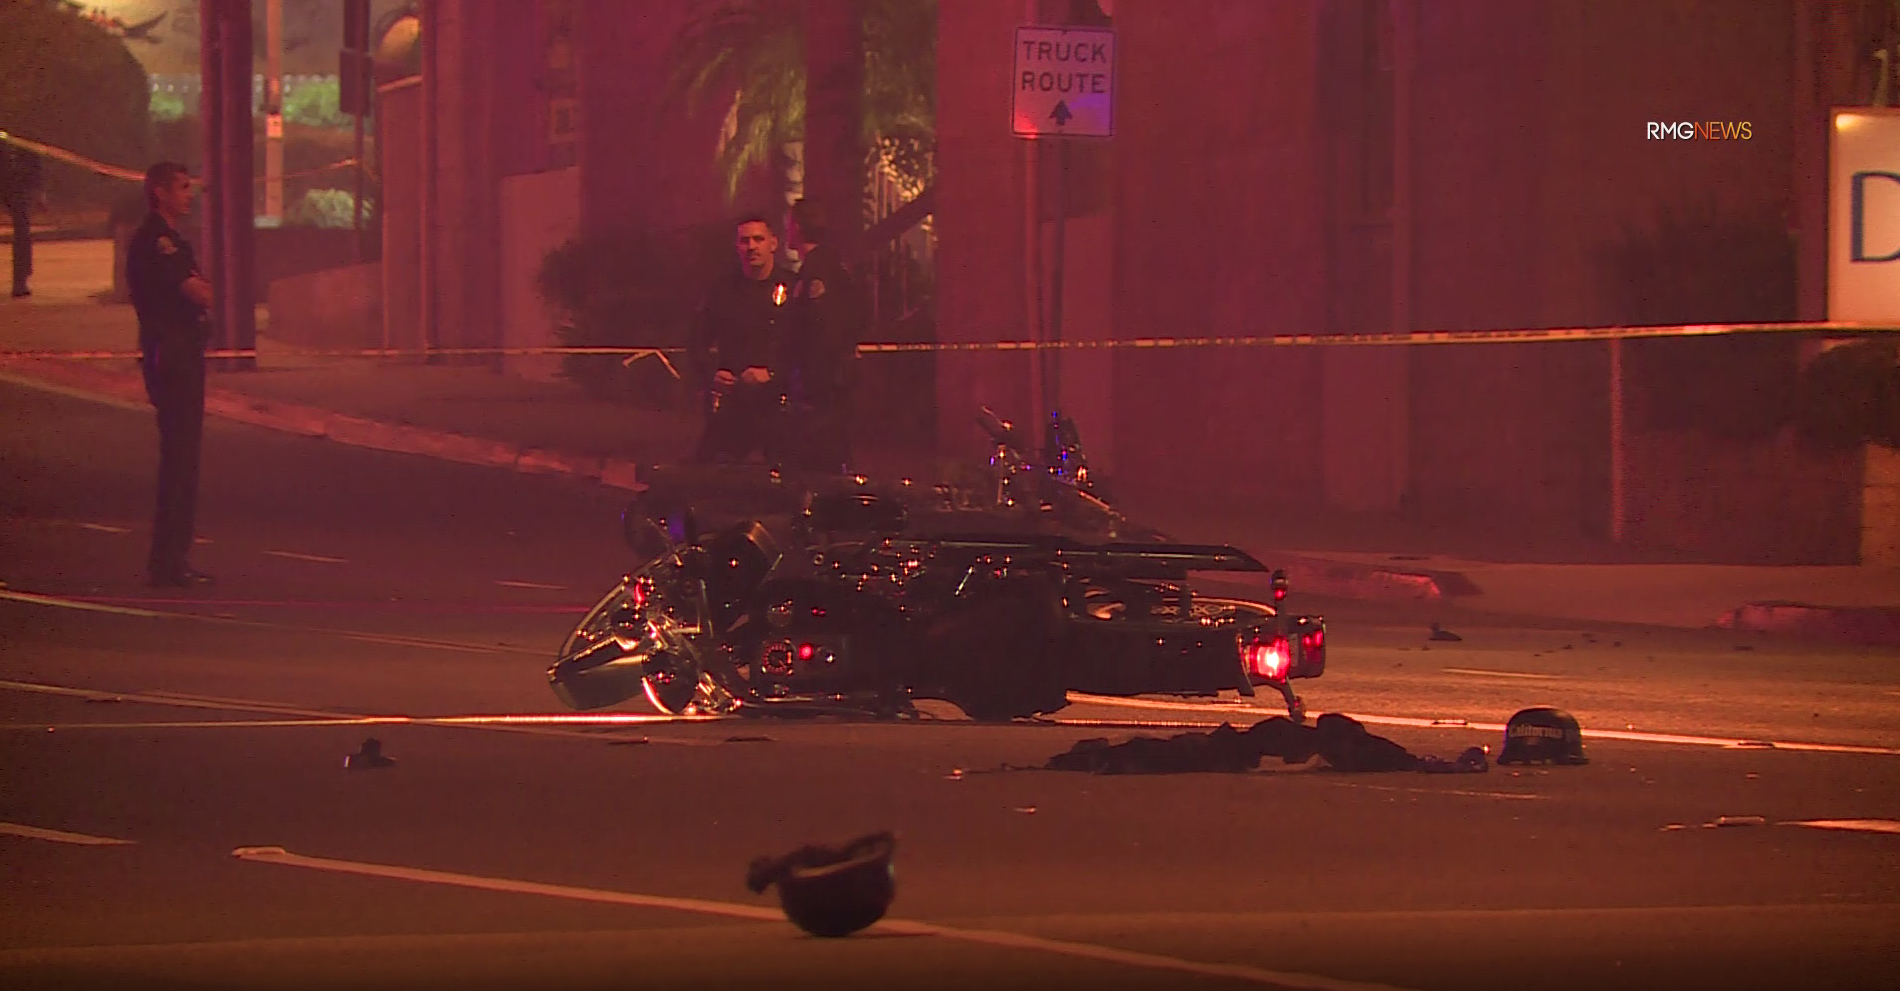 The scene of a fatal motorcycle crash in Redondo Beach is seen on Nov. 9, 2019. (Credit: RMG News)